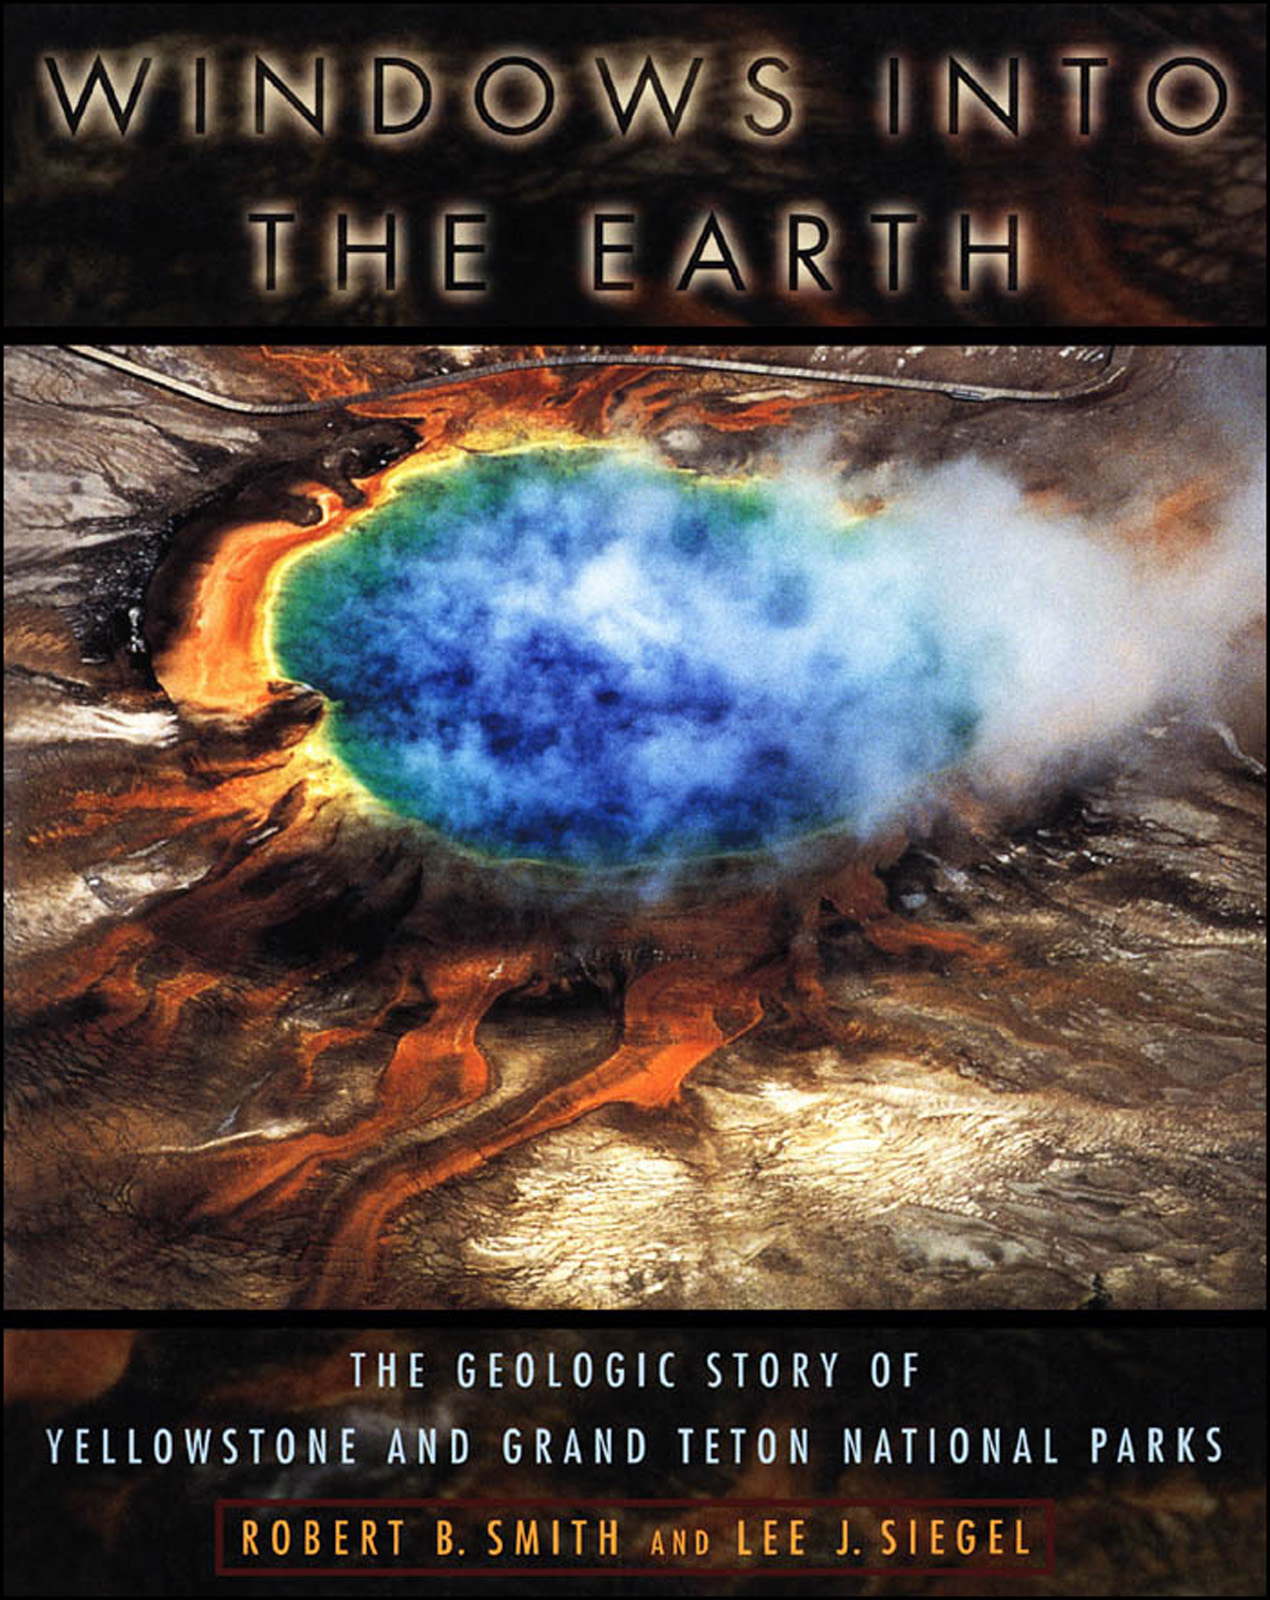 Windows into the EarthThe Geologic Story of Yellowstone and Grand Teton National Parks